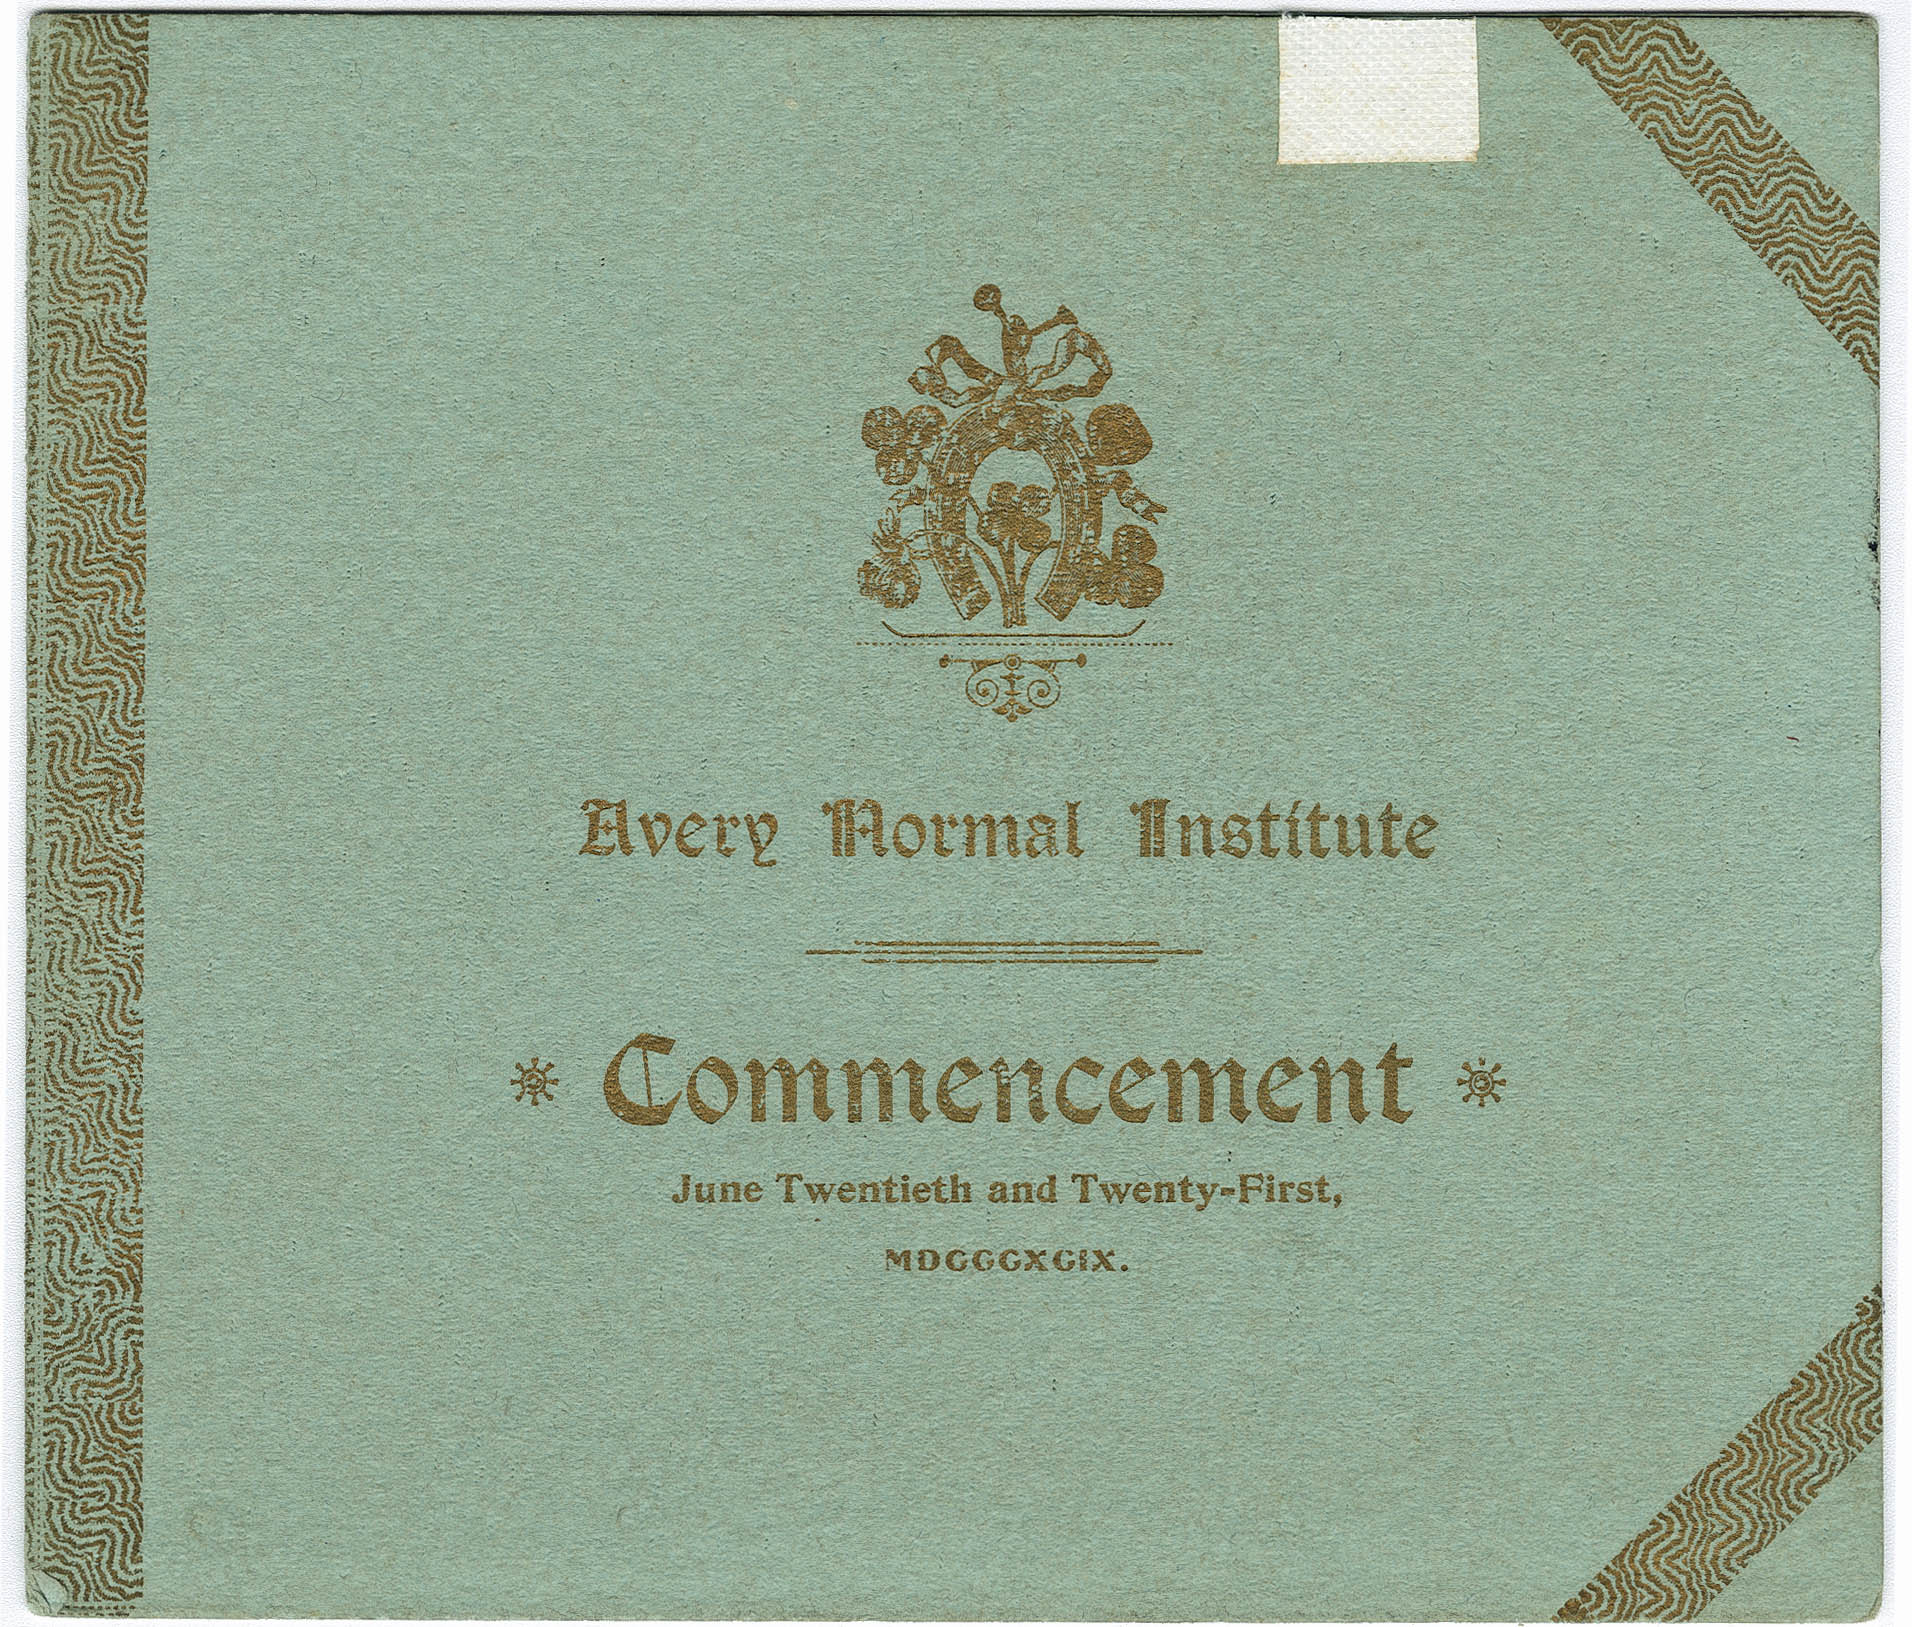 Avery Normal Institute Commencement Program